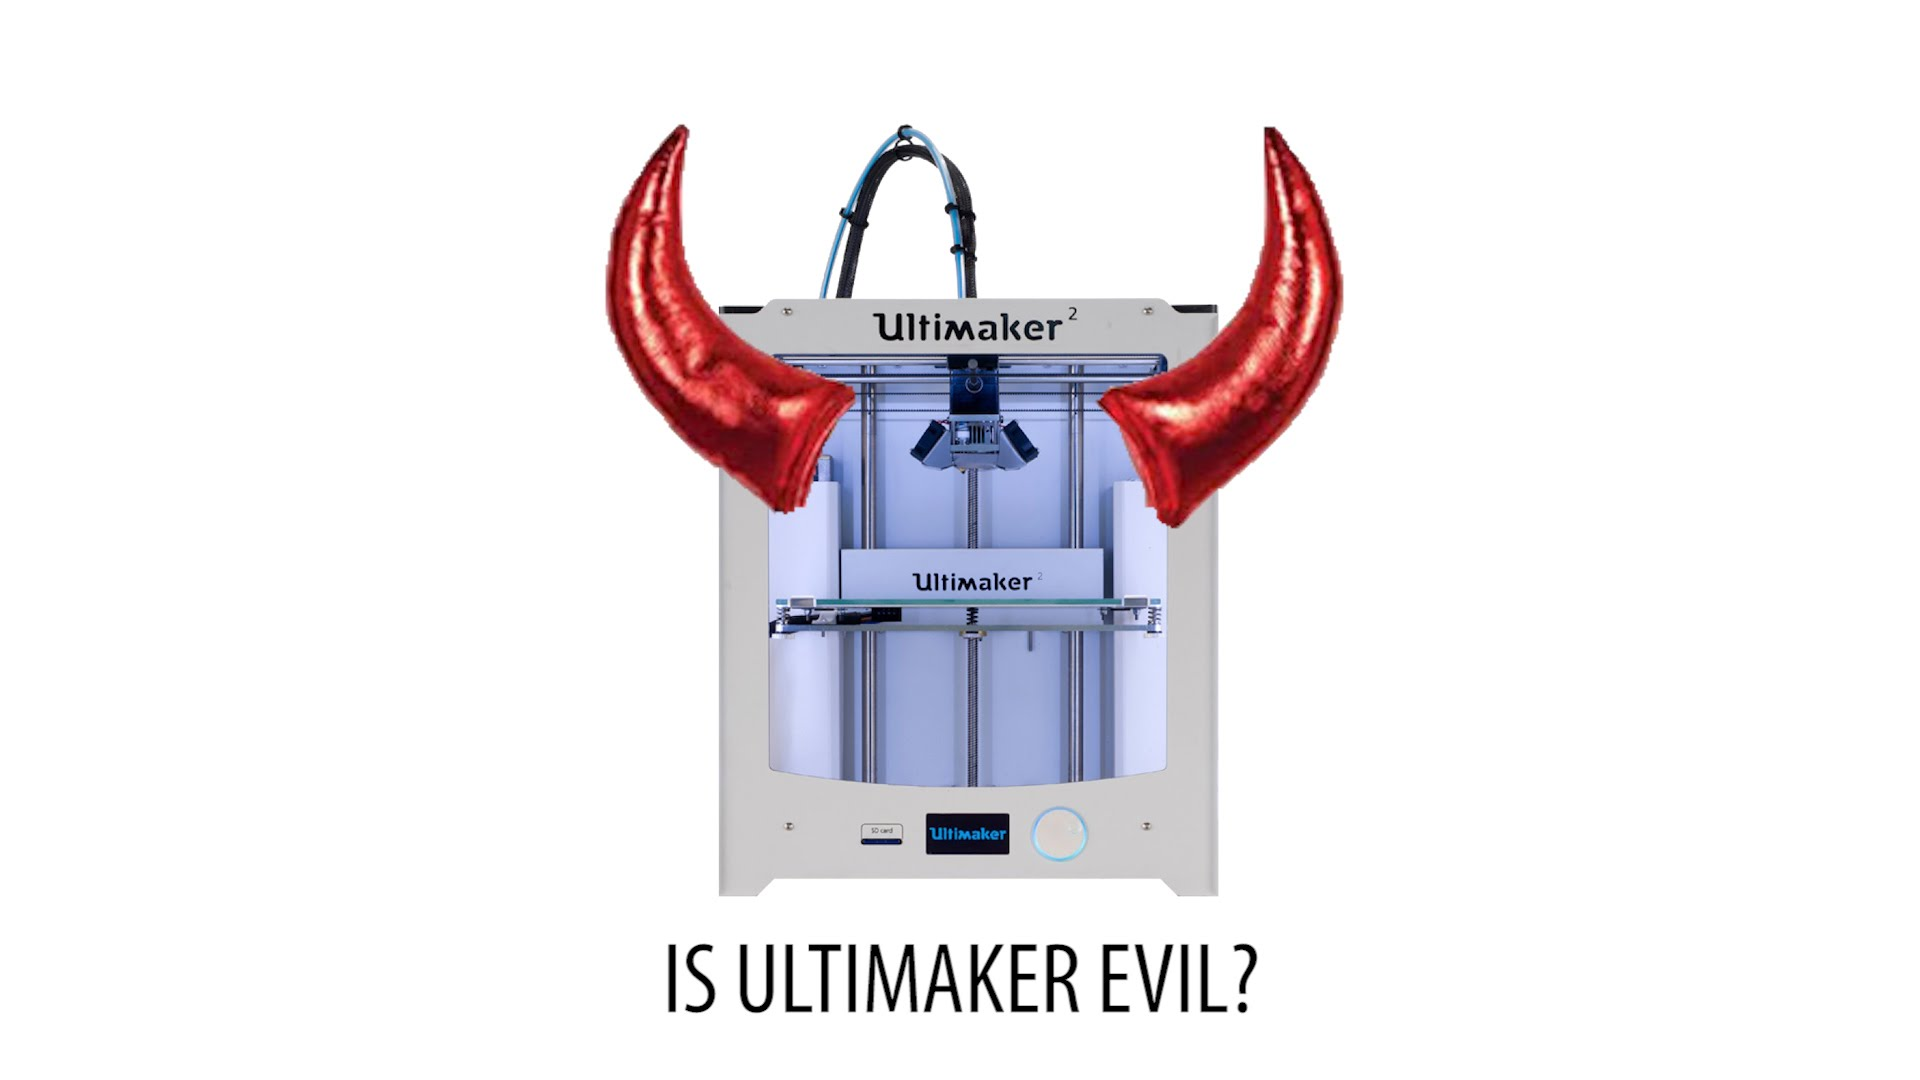 Is Ultimaker Evil? [UPDATE in the comments]